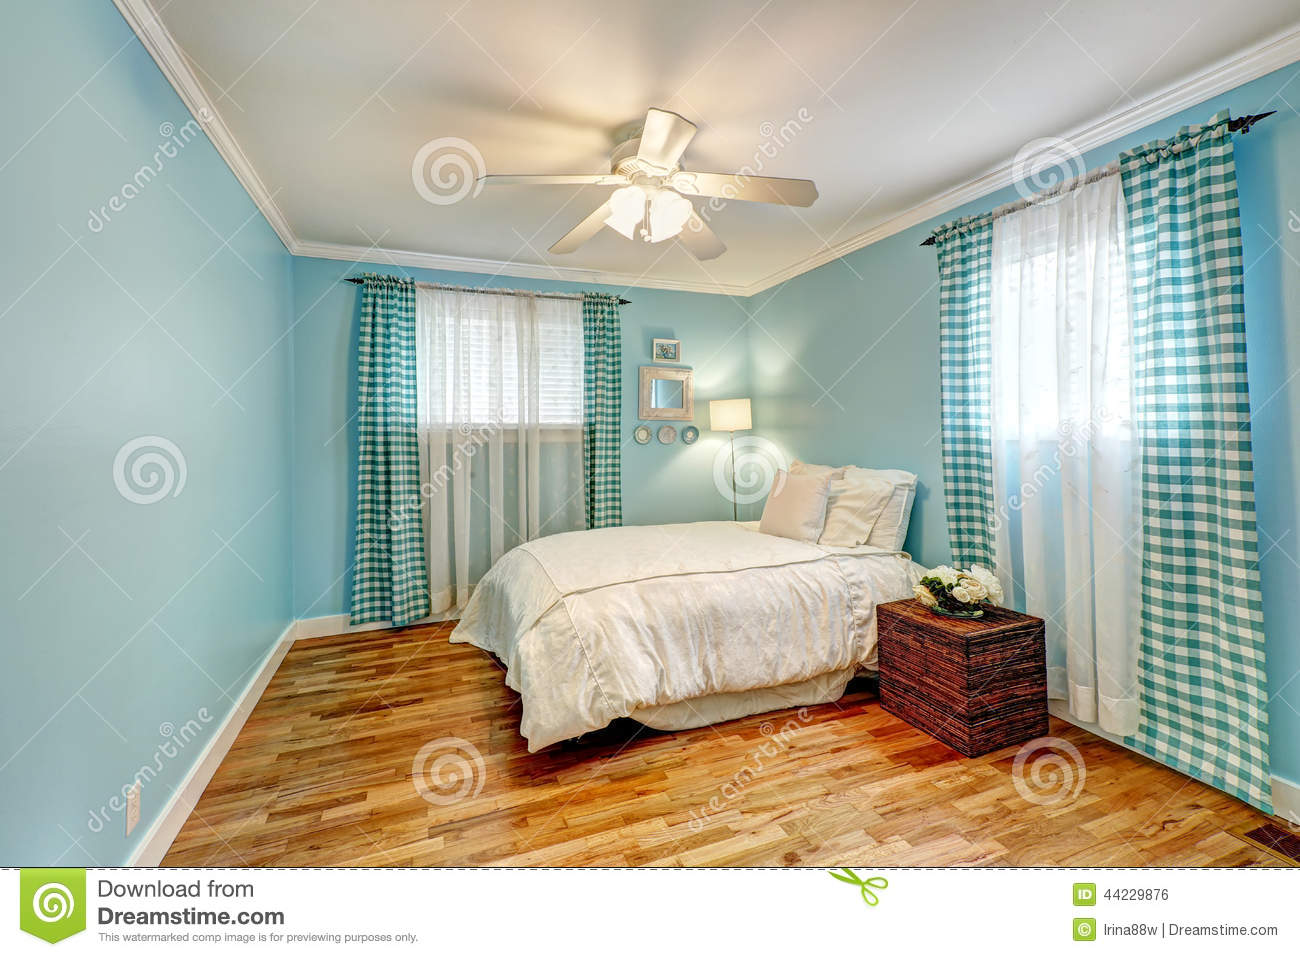 Cheerful light blue bedroom stock photo image 44229876 for Chambre a coucher bleu turquoise